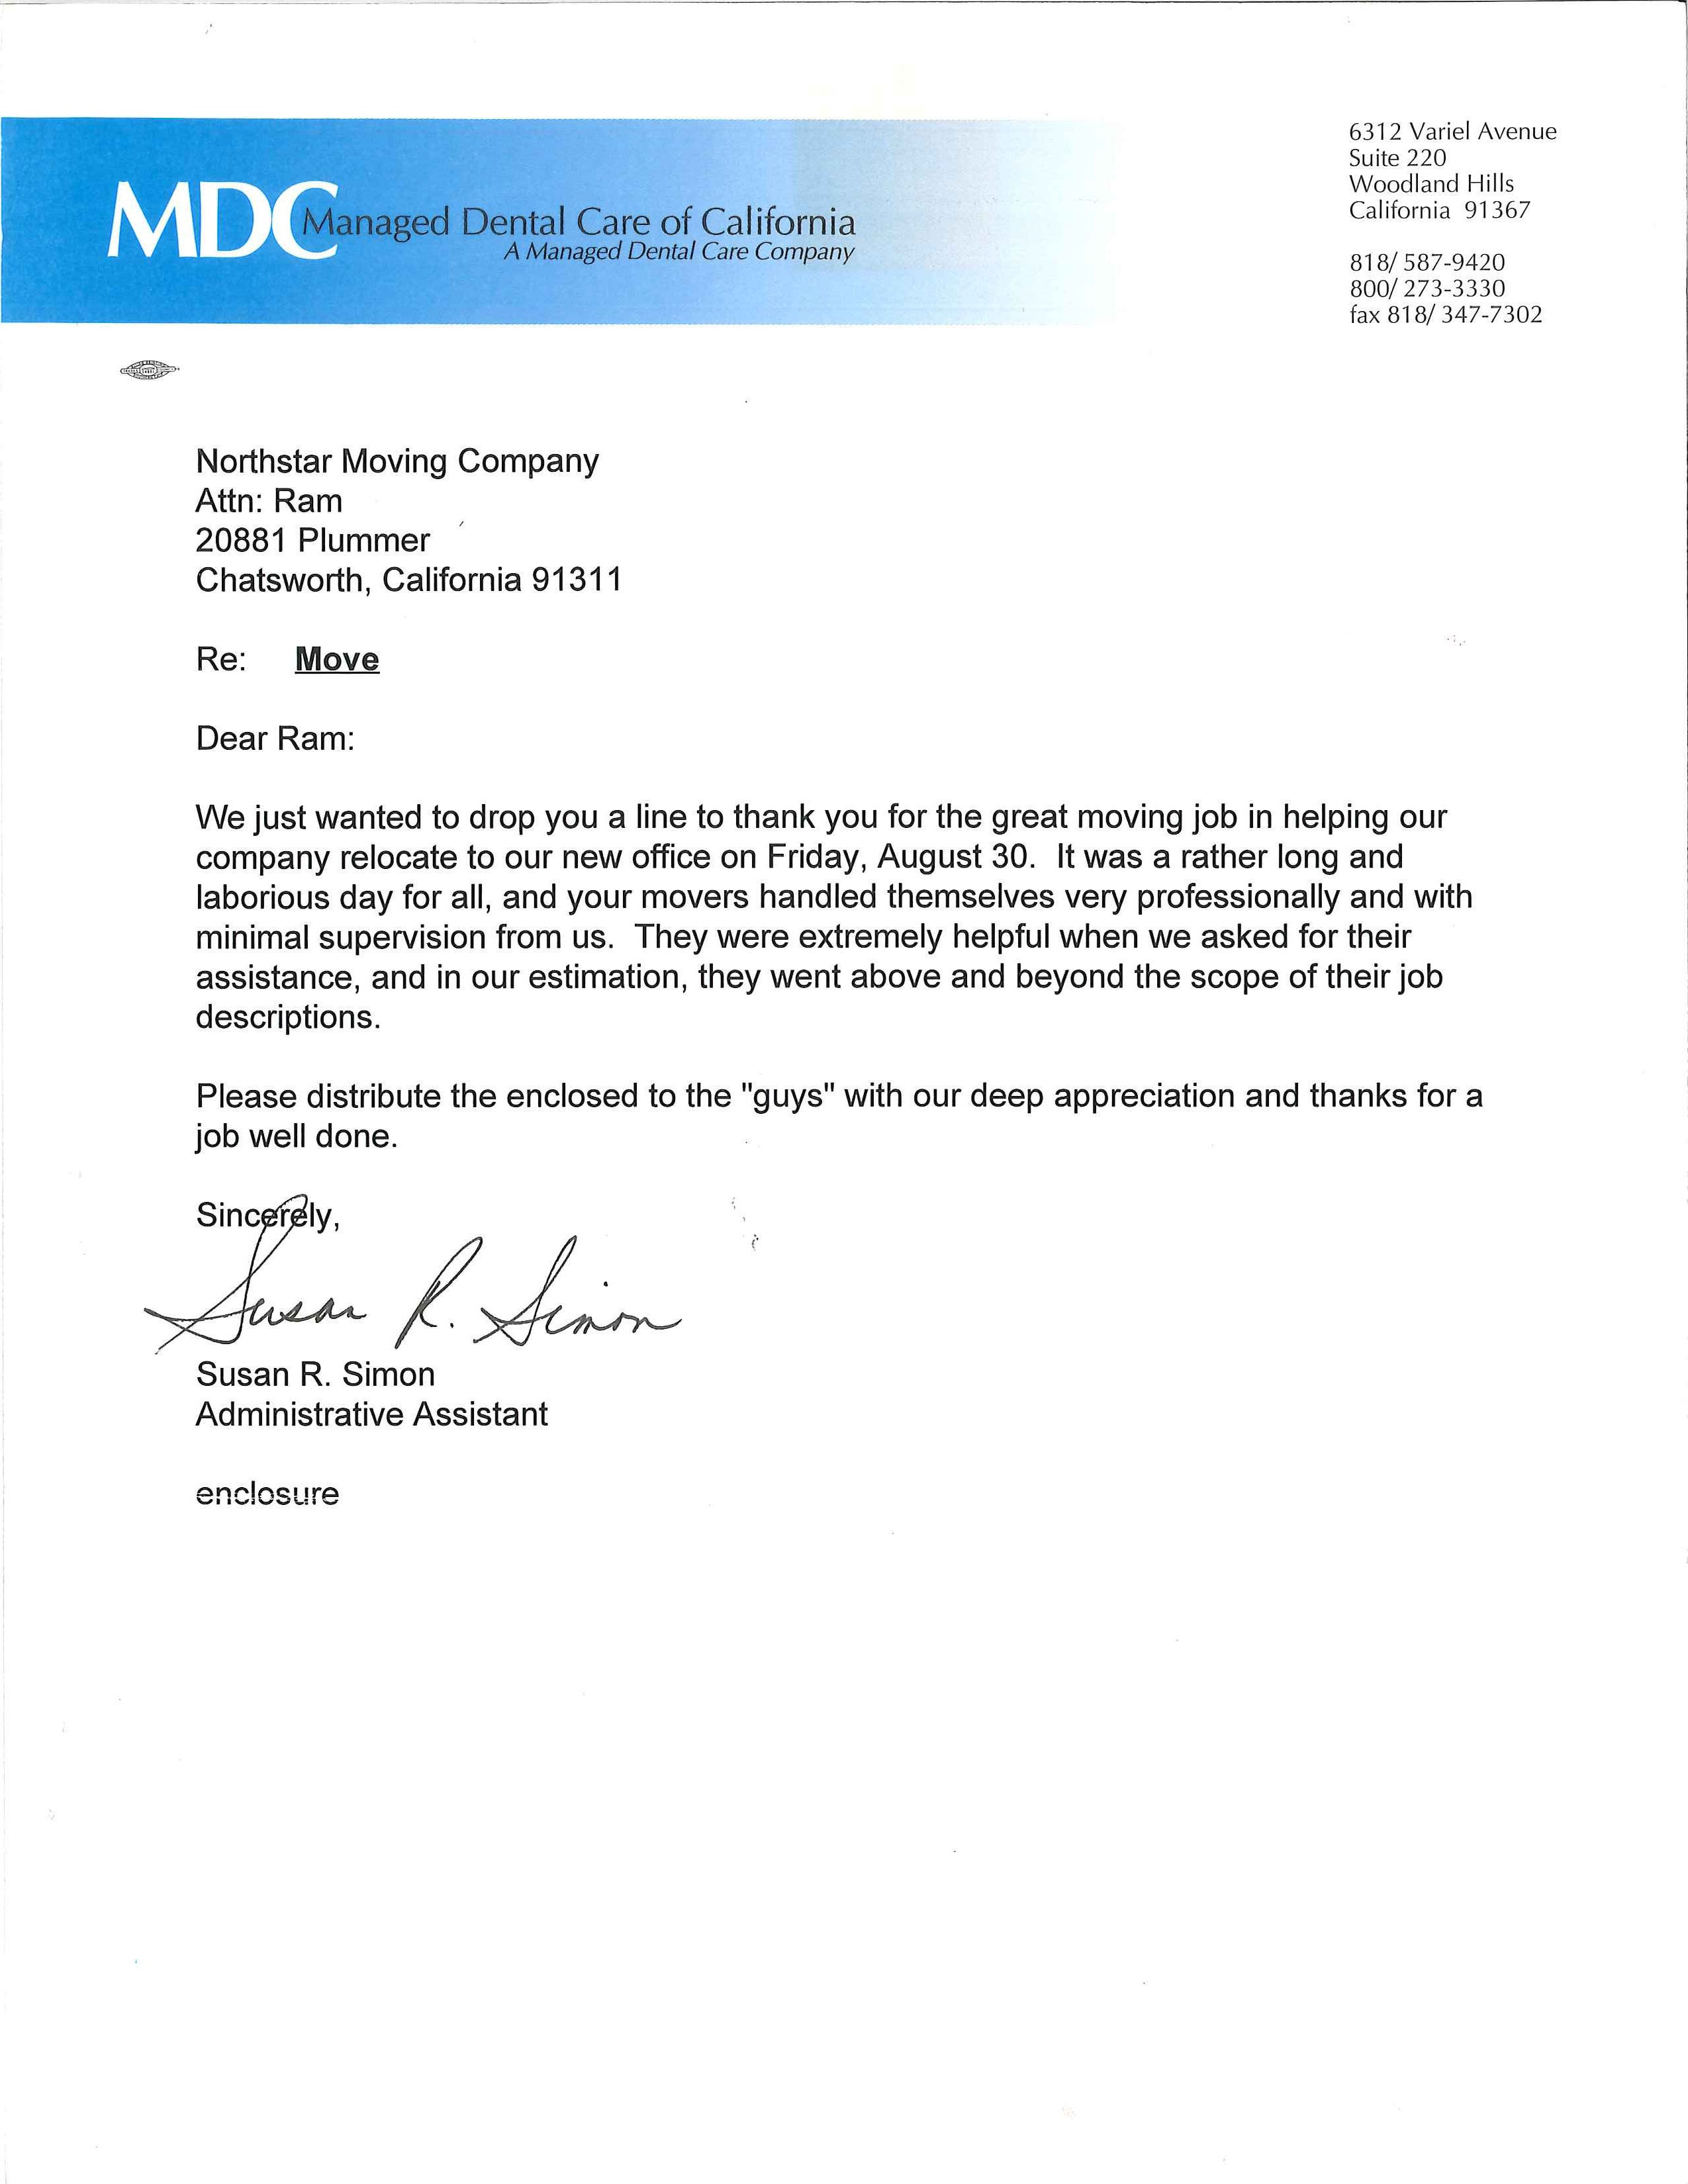 Recommendation Letter from Managed Dental Care